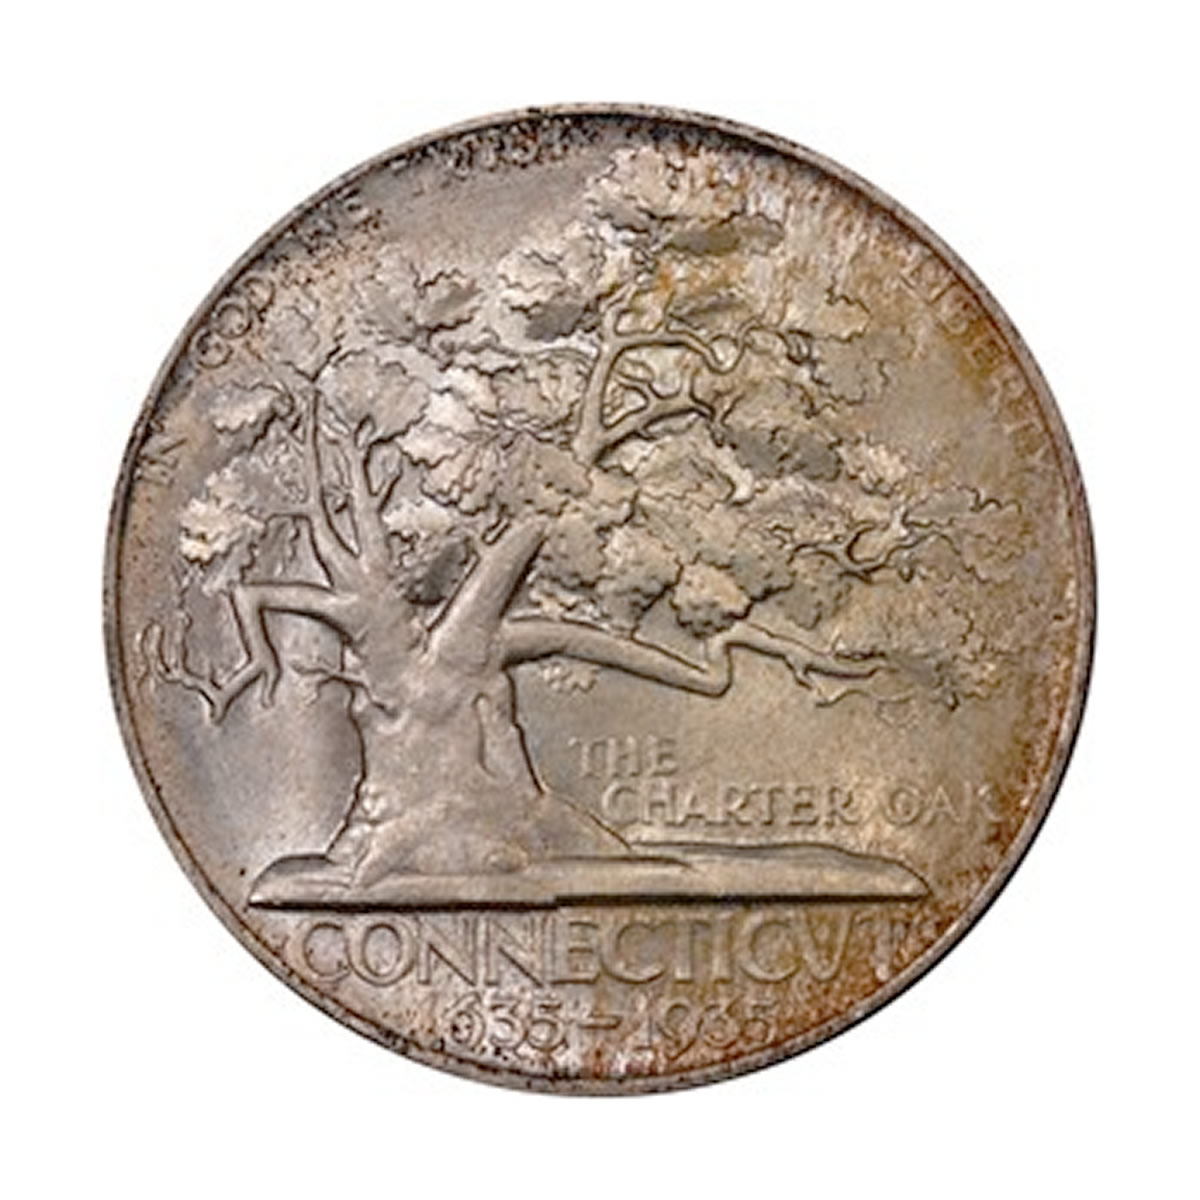 Connecticut Commemoratives